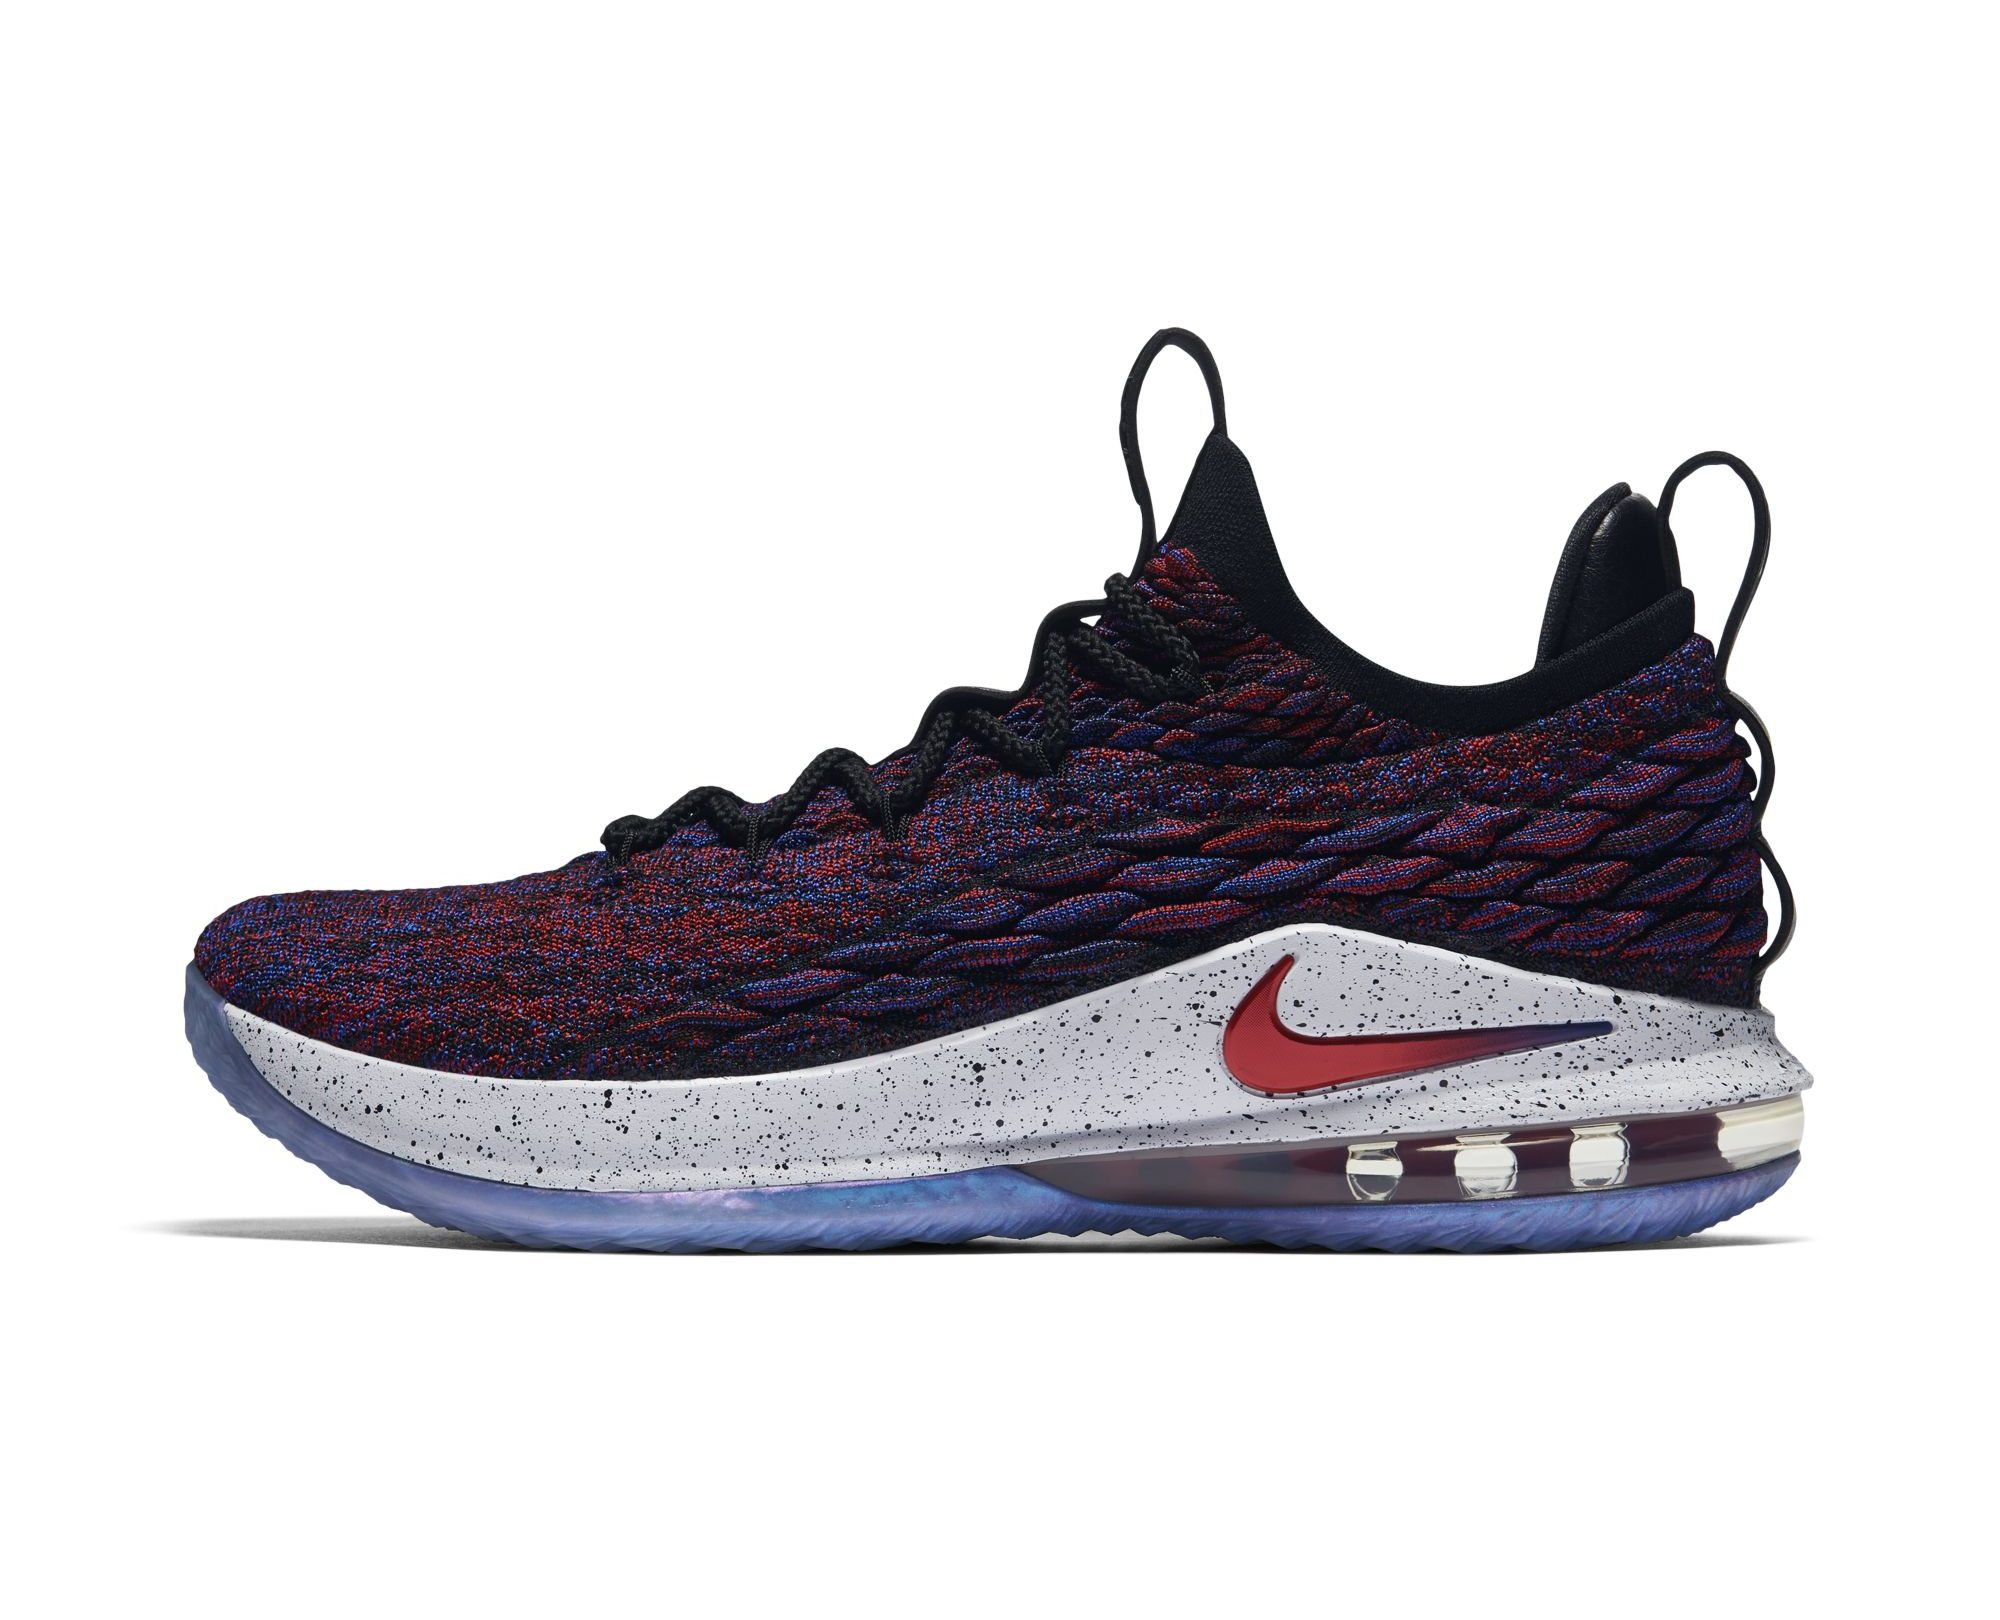 best service b20d6 7d4f3 Nike Has Debuted the LeBron 15 Low 'Supernova' - WearTesters